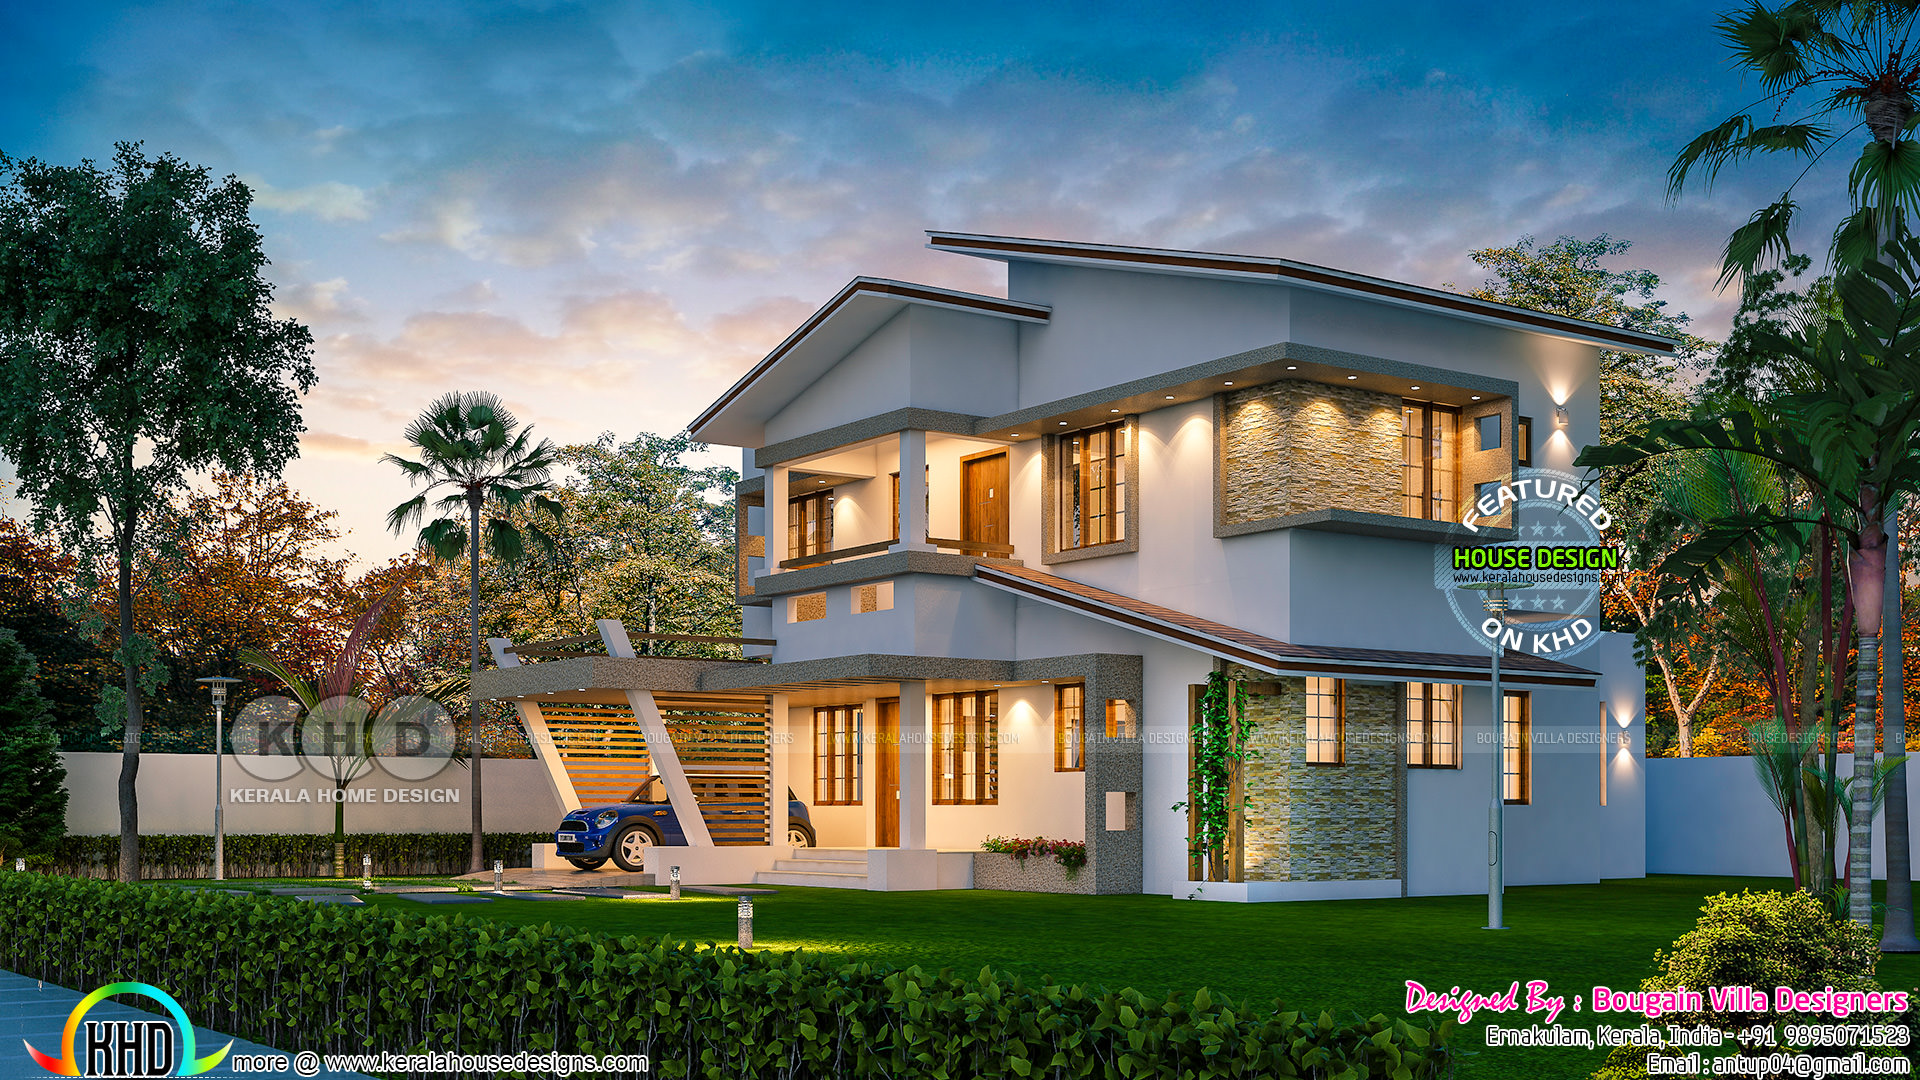 Design of a ultra modern classic style 4bhk house kerala